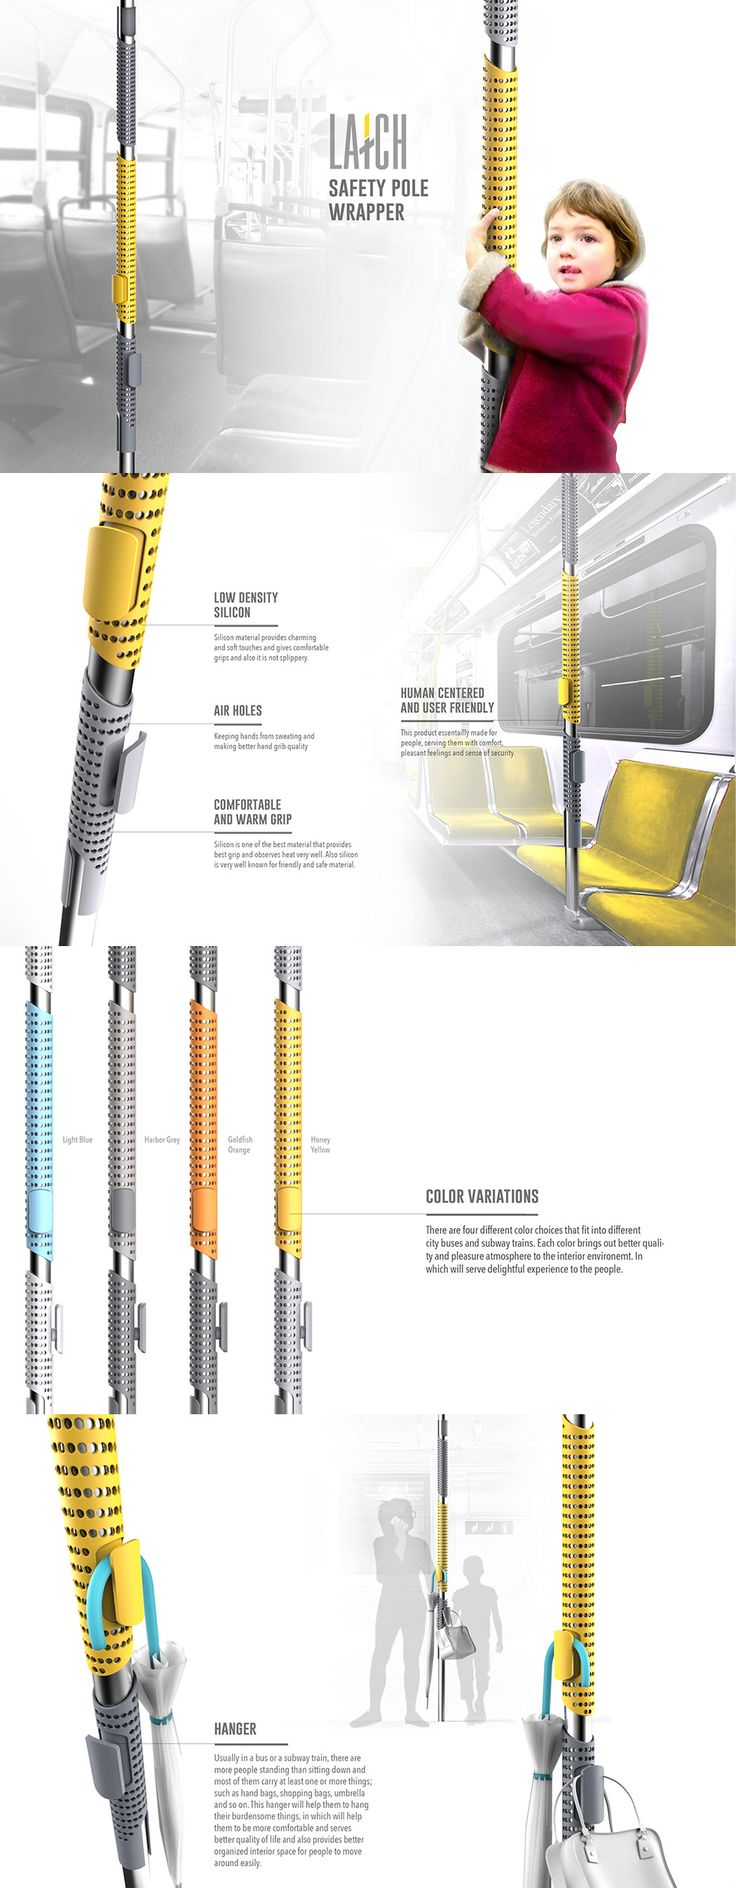 Not talking about the north and south poles! I'm talking about the metal poles in buses and subways. I cringe at the idea of sitting on a toilet in the winter, imagine having to hold on to a stainless steel pole for support during a subway ride! *shudder* Read more at Yanko Design